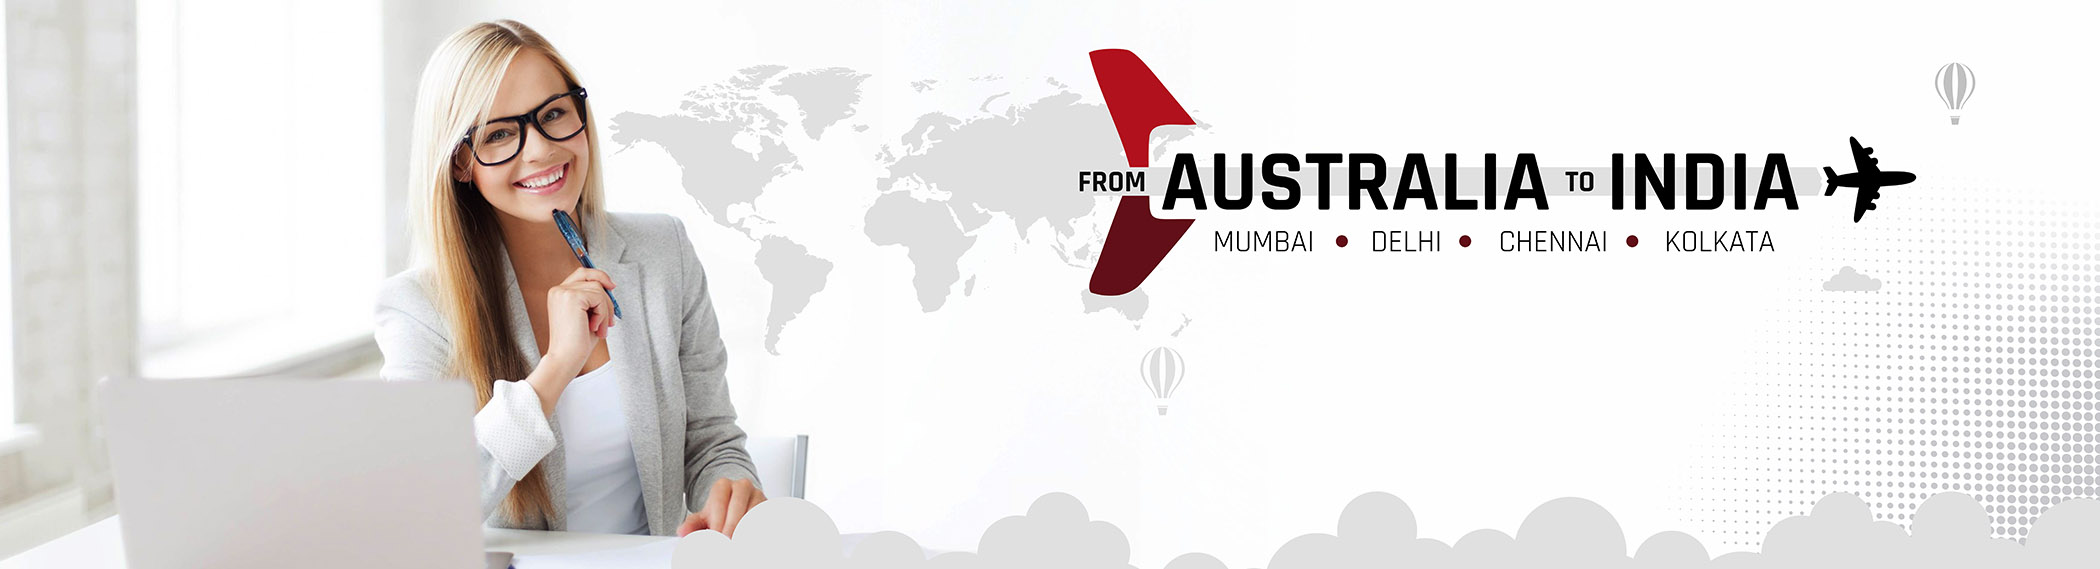 1430x400 website FDF banners FLIGHTS TO INDIA